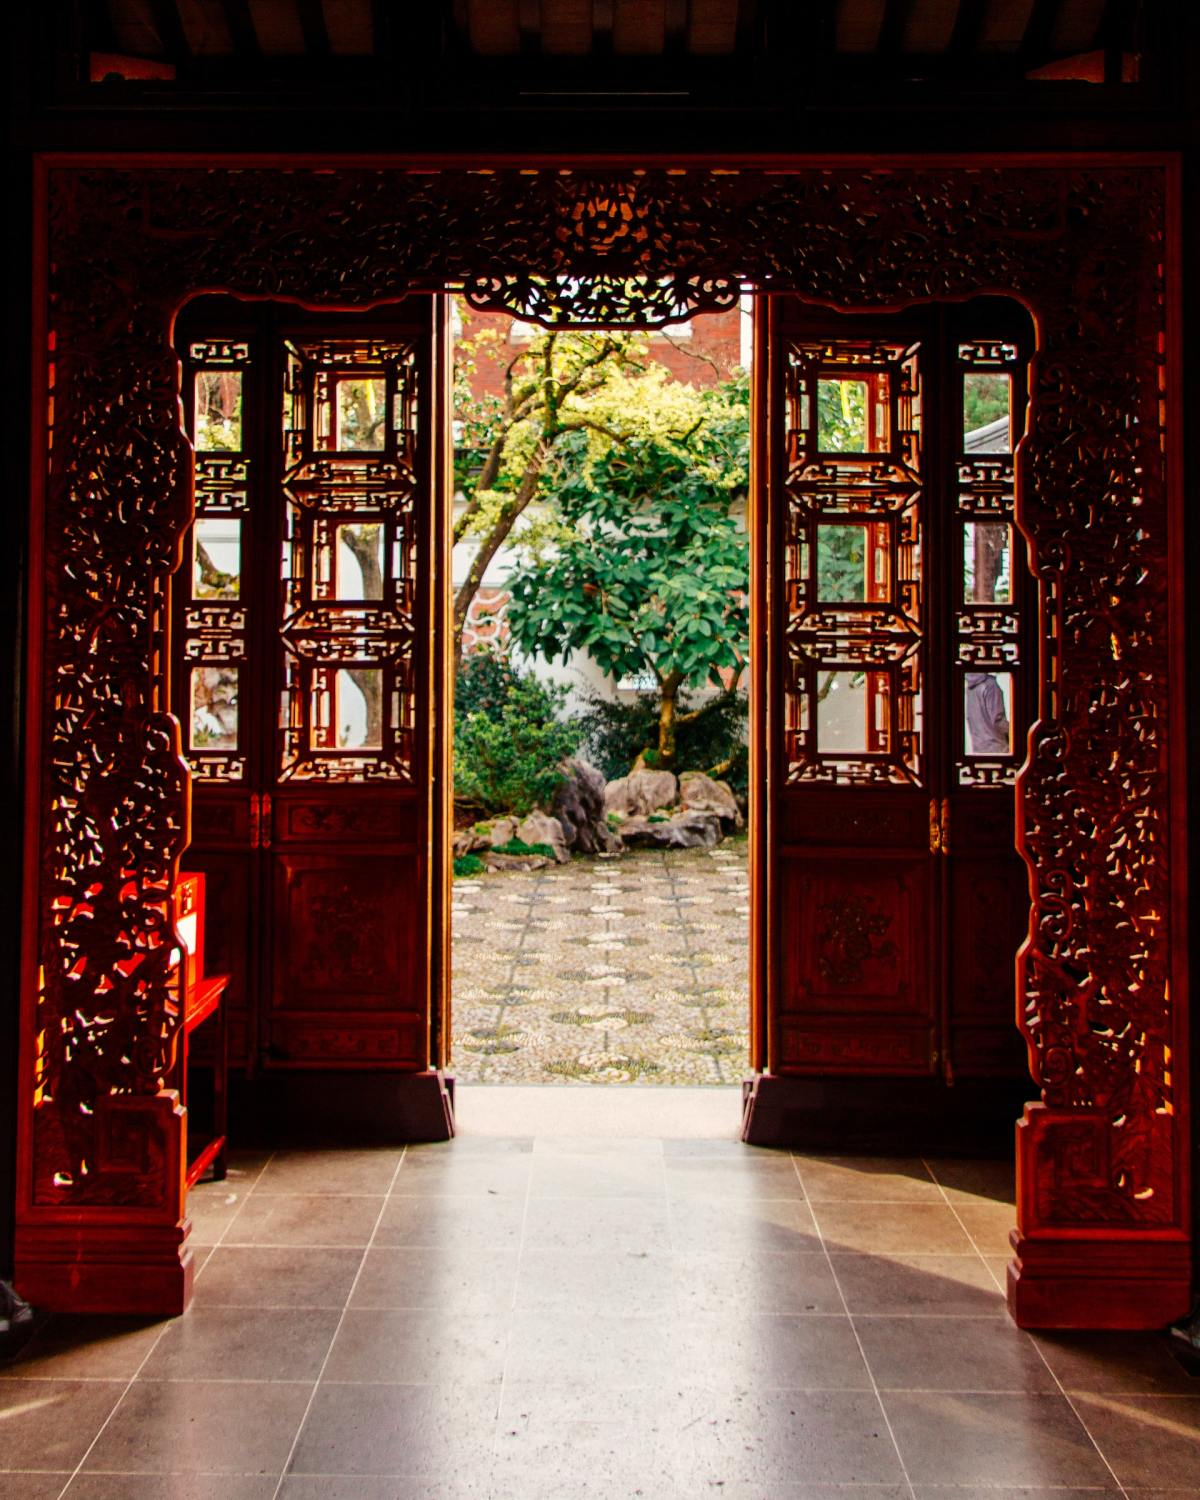 image of a doorway looking out